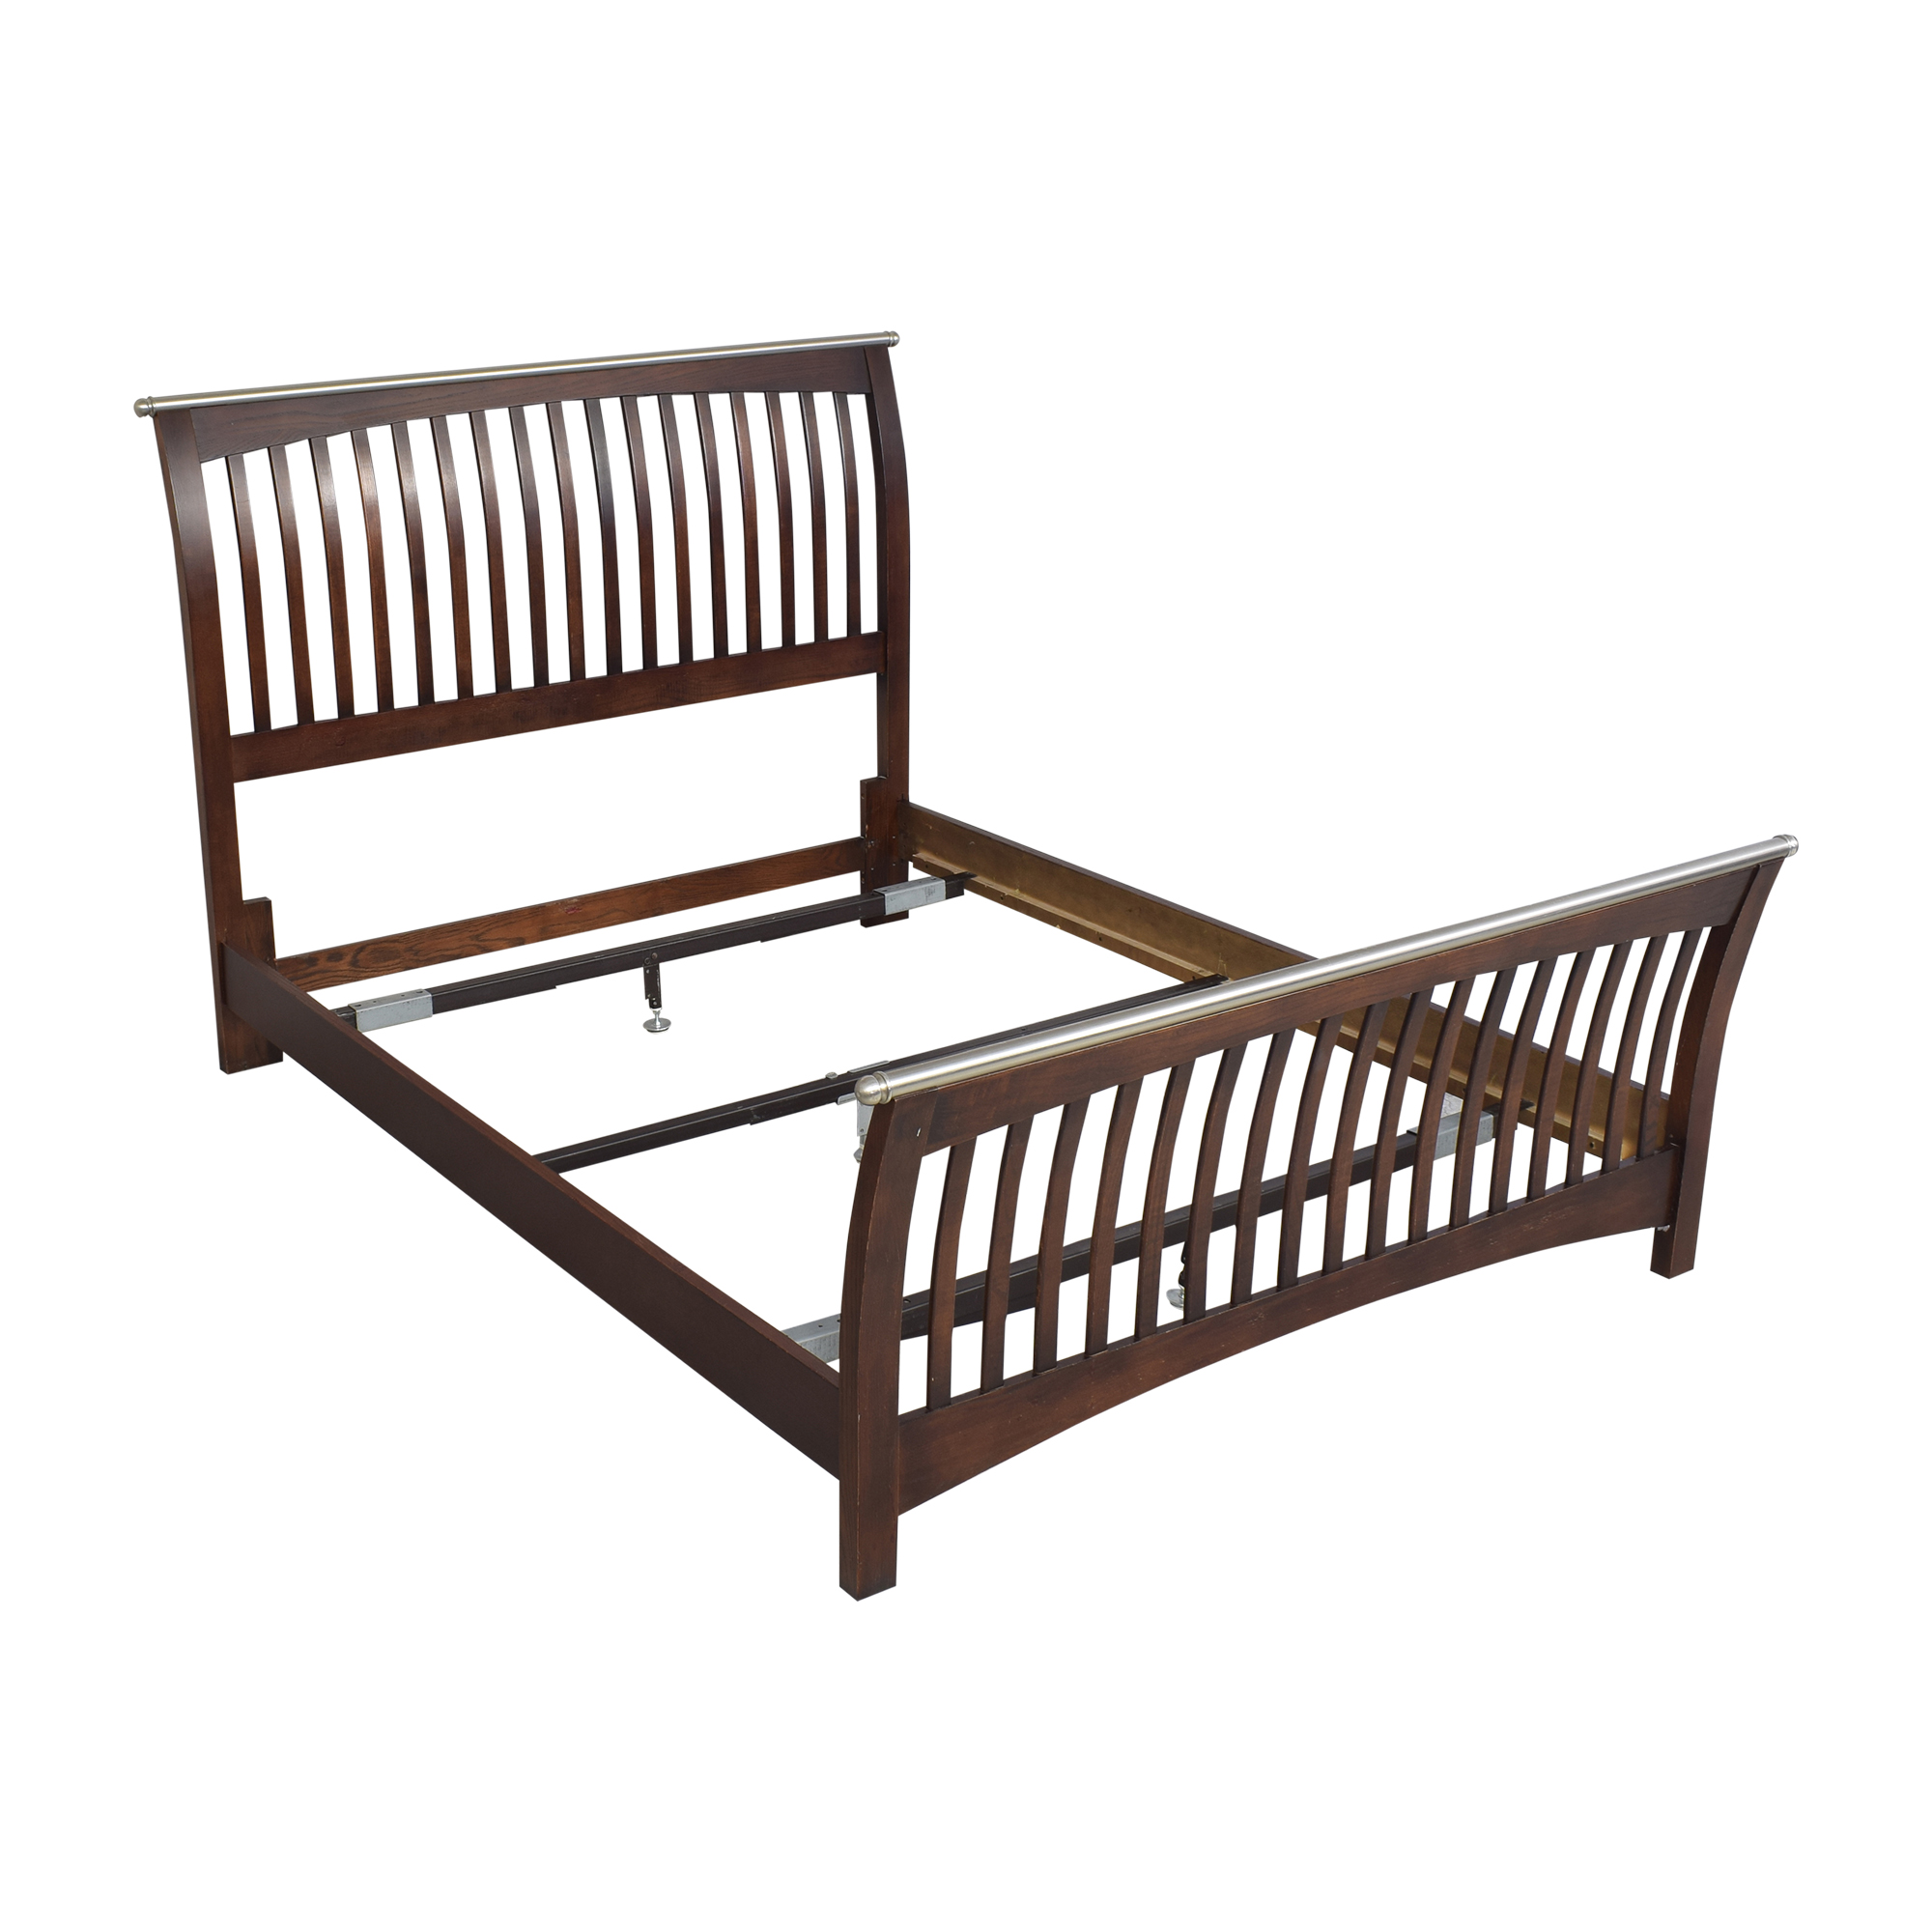 Thomasville Thomasville Mission-Style Queen Bed ct